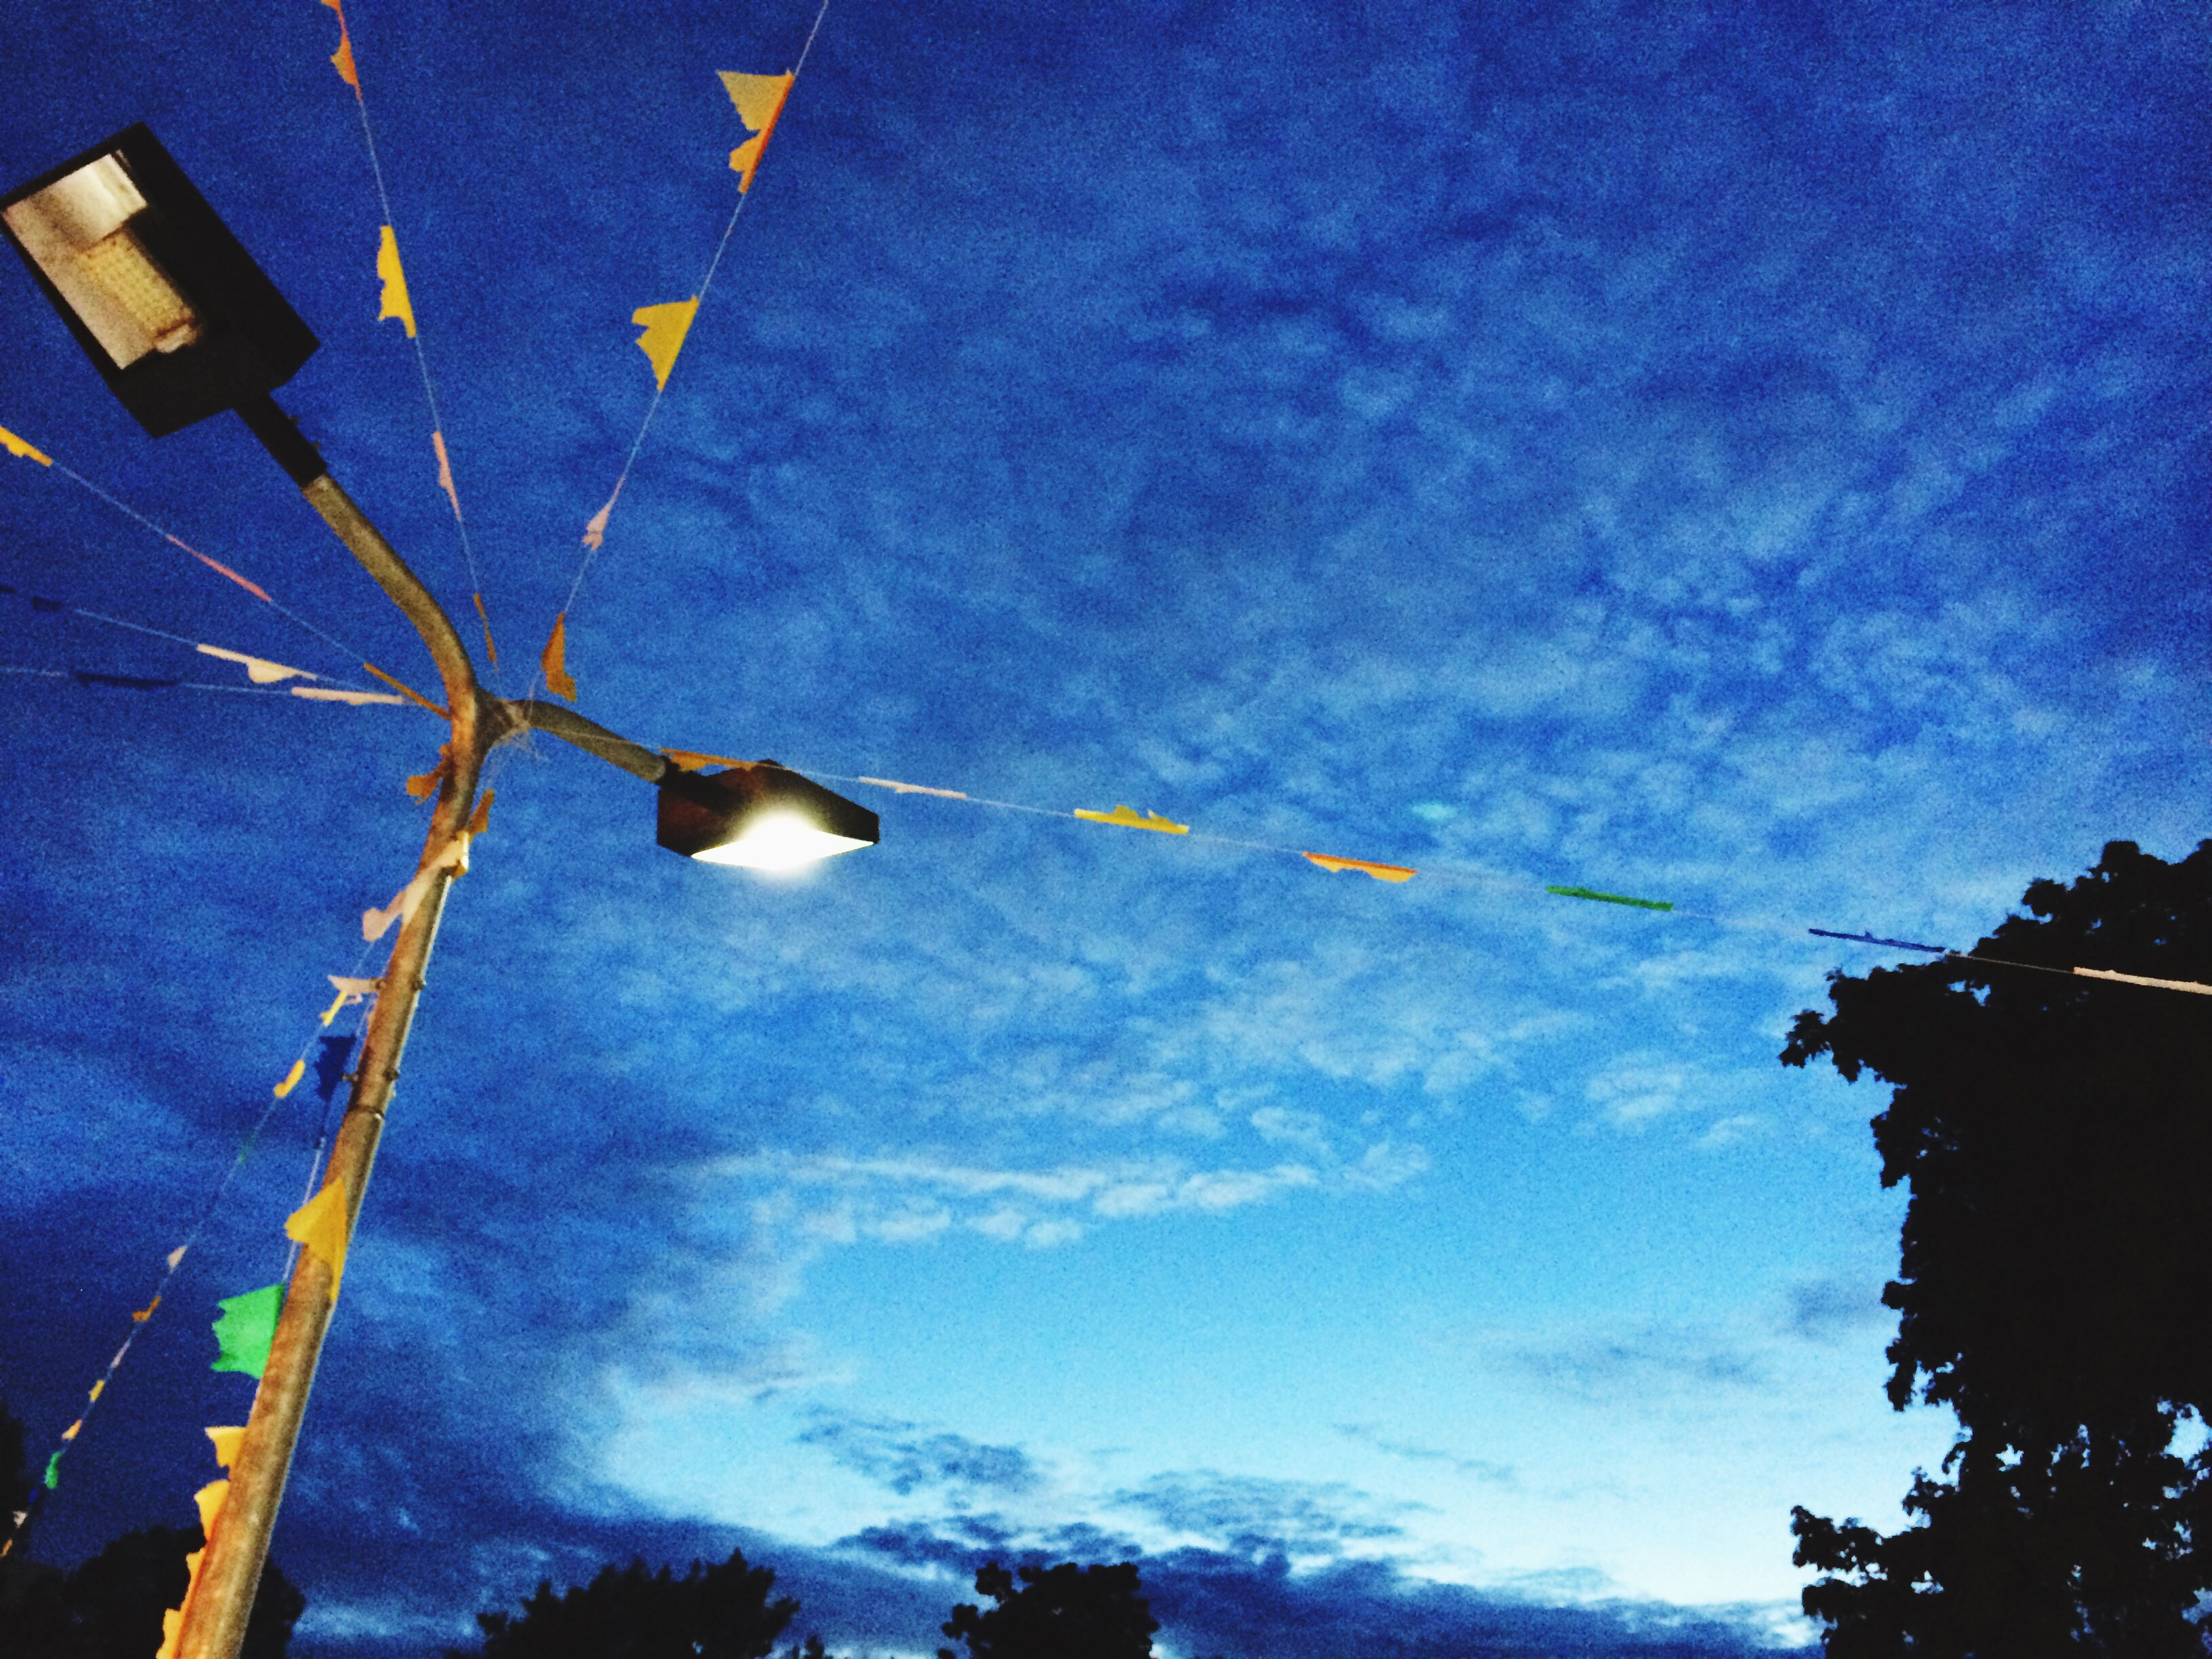 low angle view, sky, tree, street light, cloud - sky, blue, nature, high section, cloud, outdoors, lighting equipment, beauty in nature, no people, built structure, day, building exterior, cloudy, branch, growth, tranquility